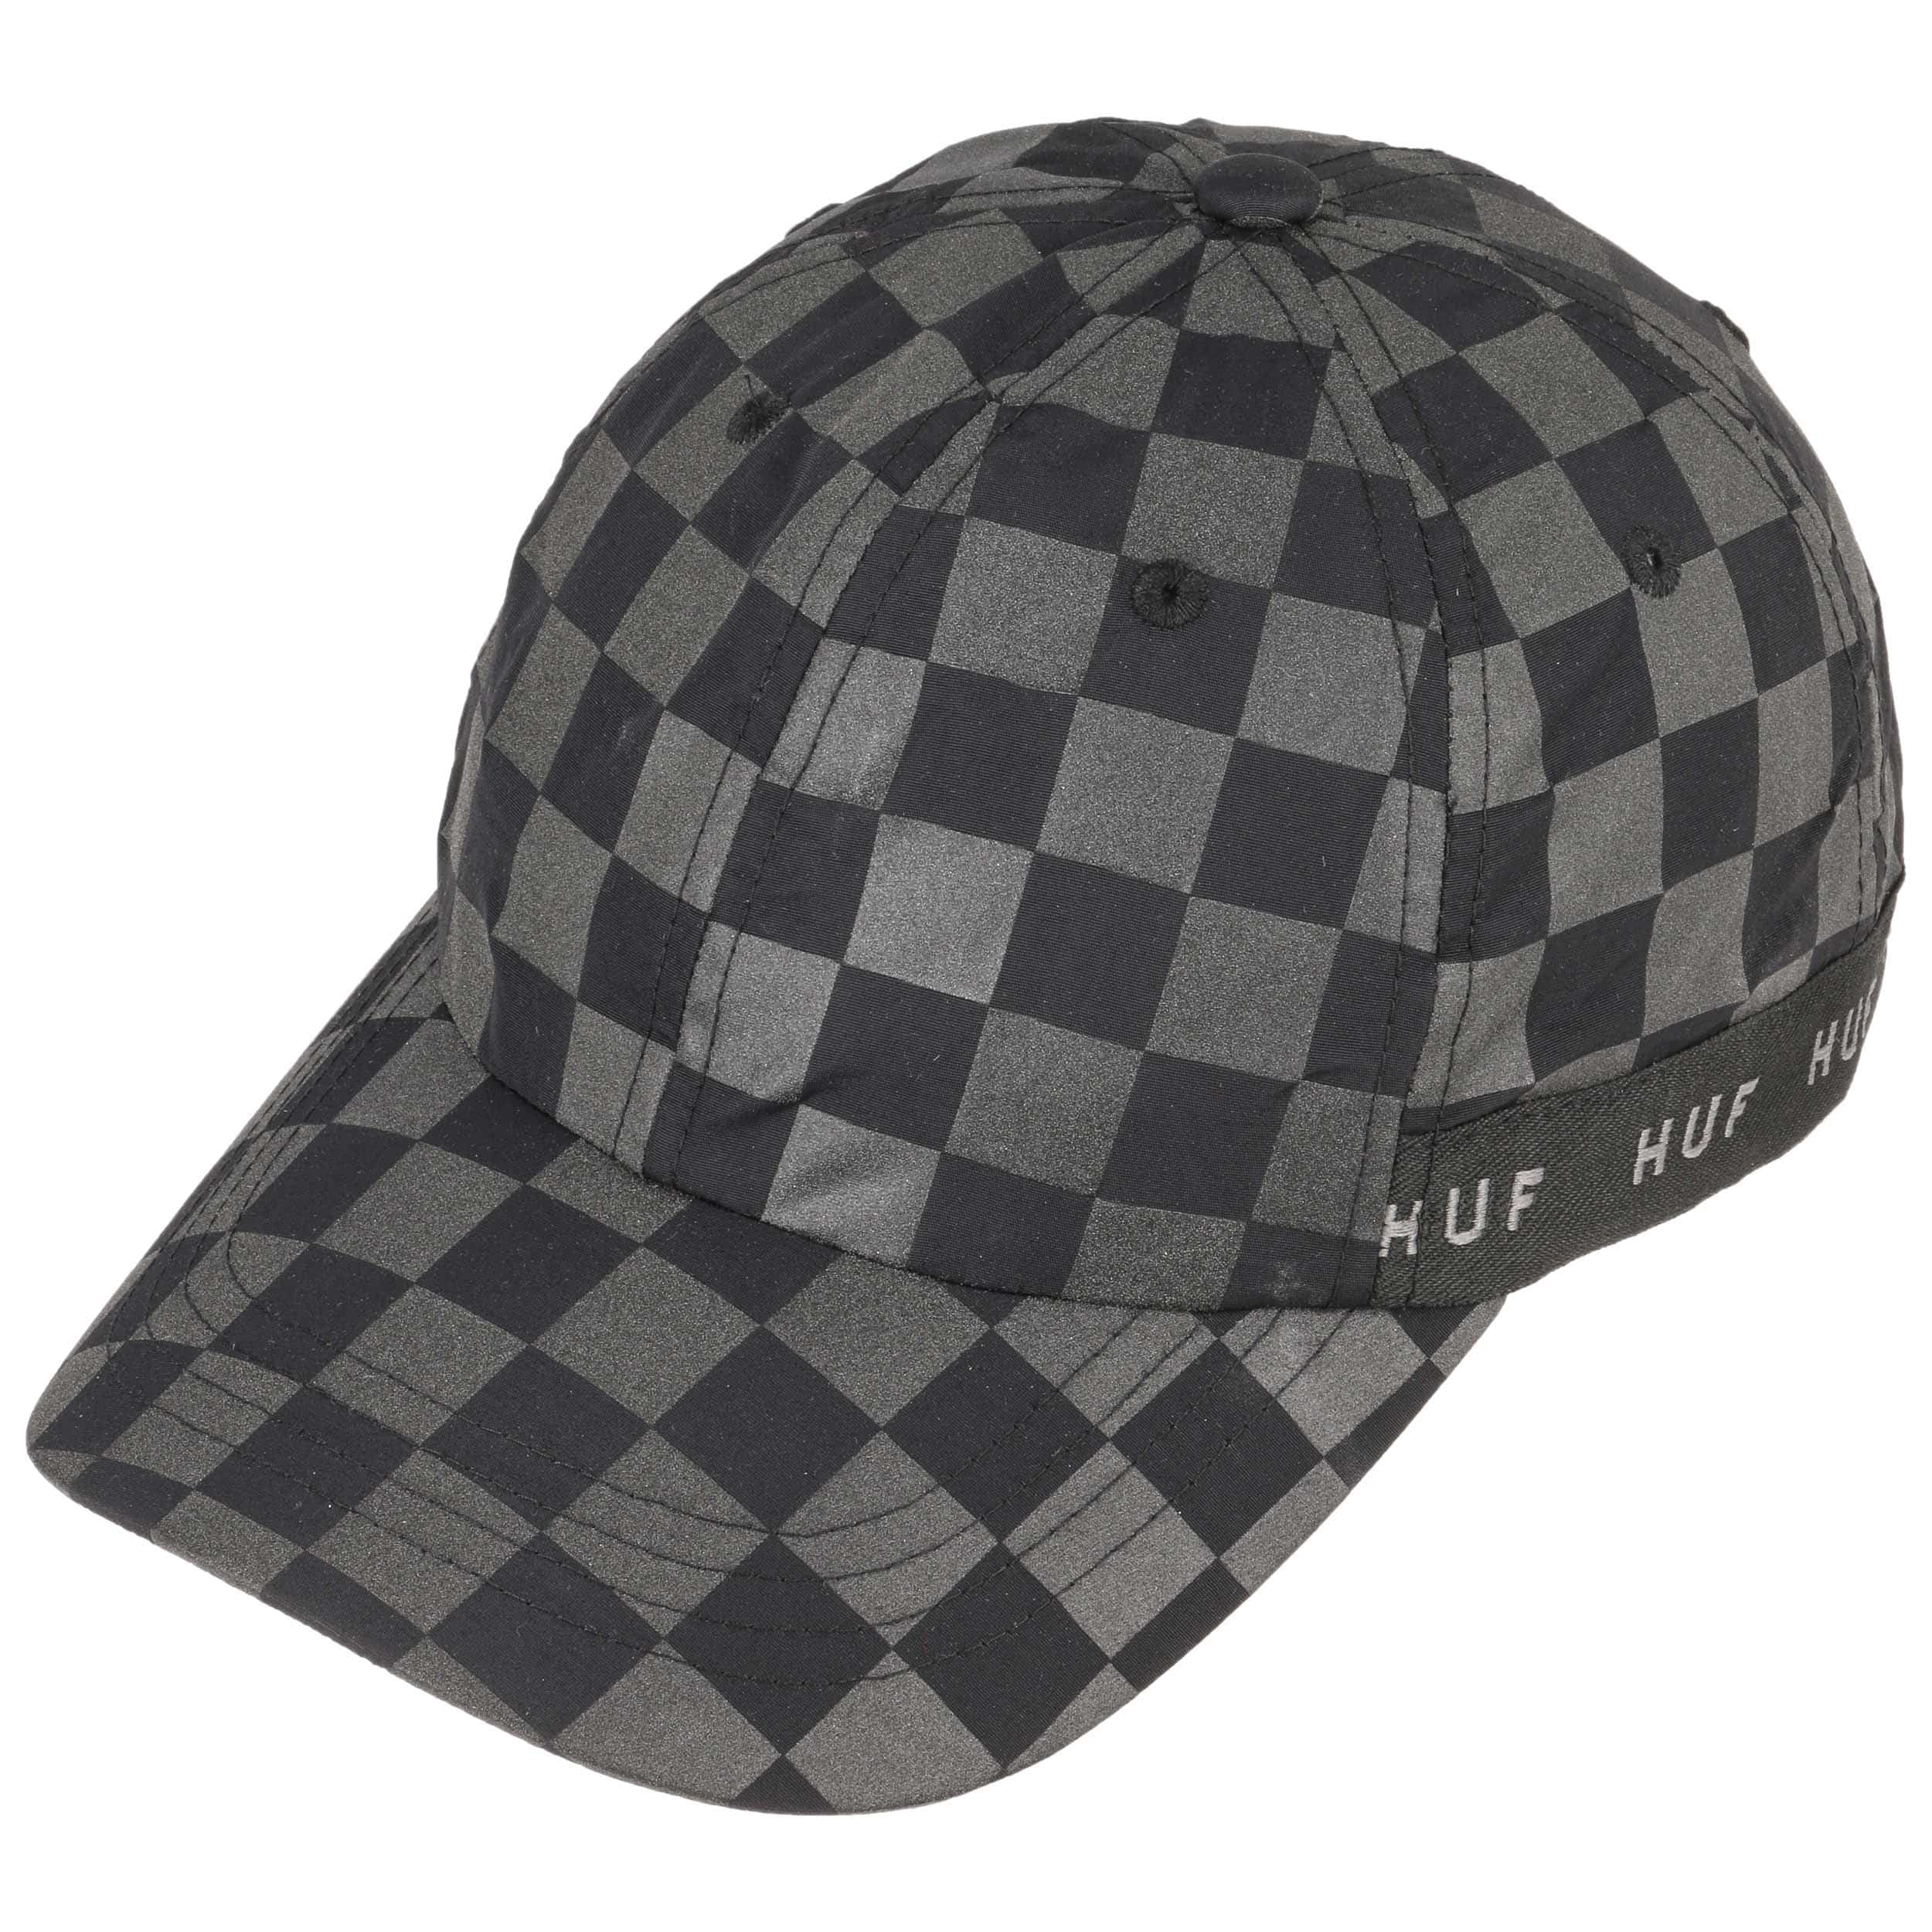 Blackout Curved Strapback Cap by HUF - black 1 ... 8611142a137